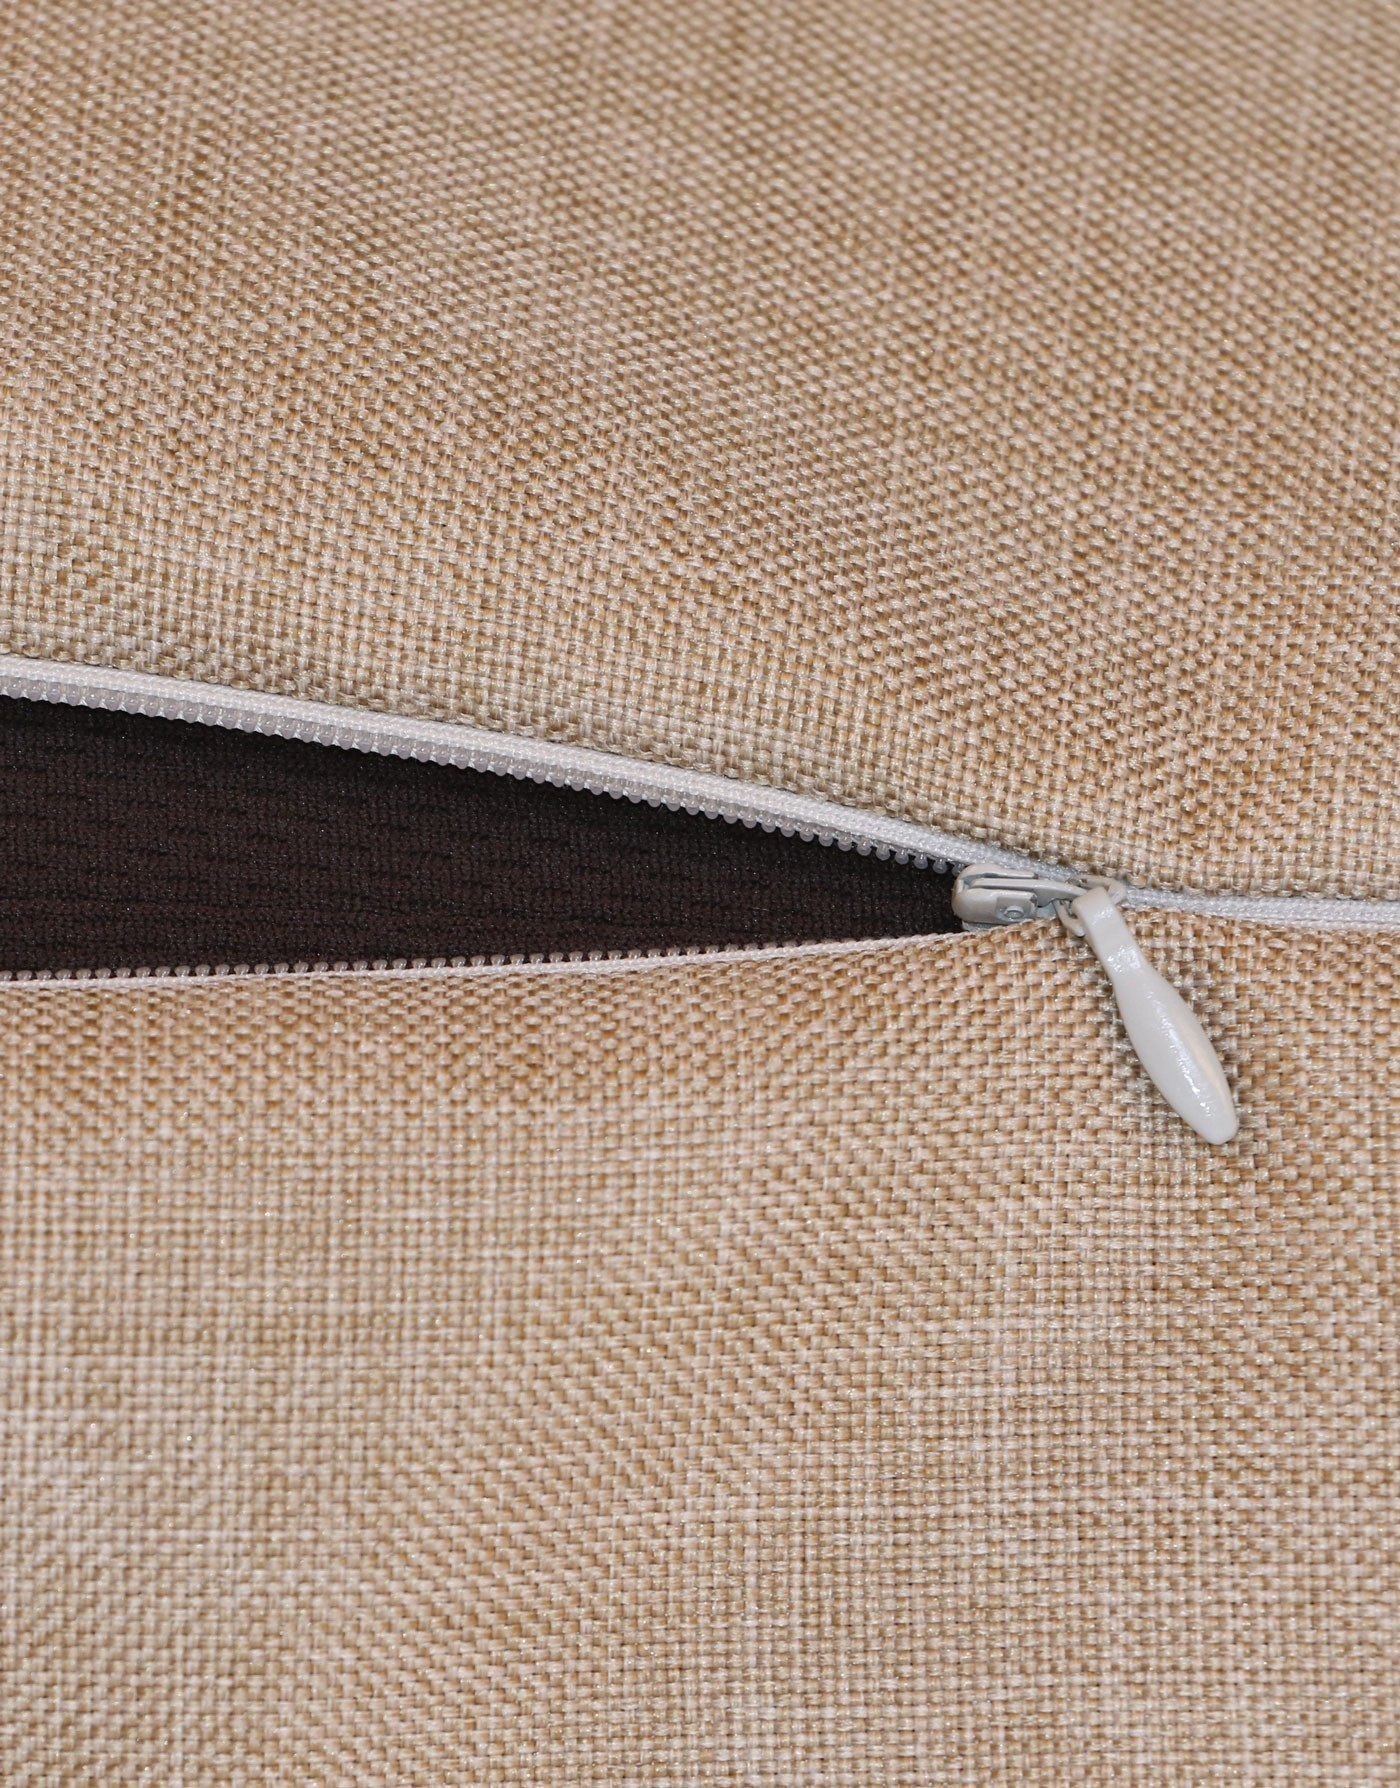 Replacement Outer Cover for Clébard cushion - Linen - Champagne